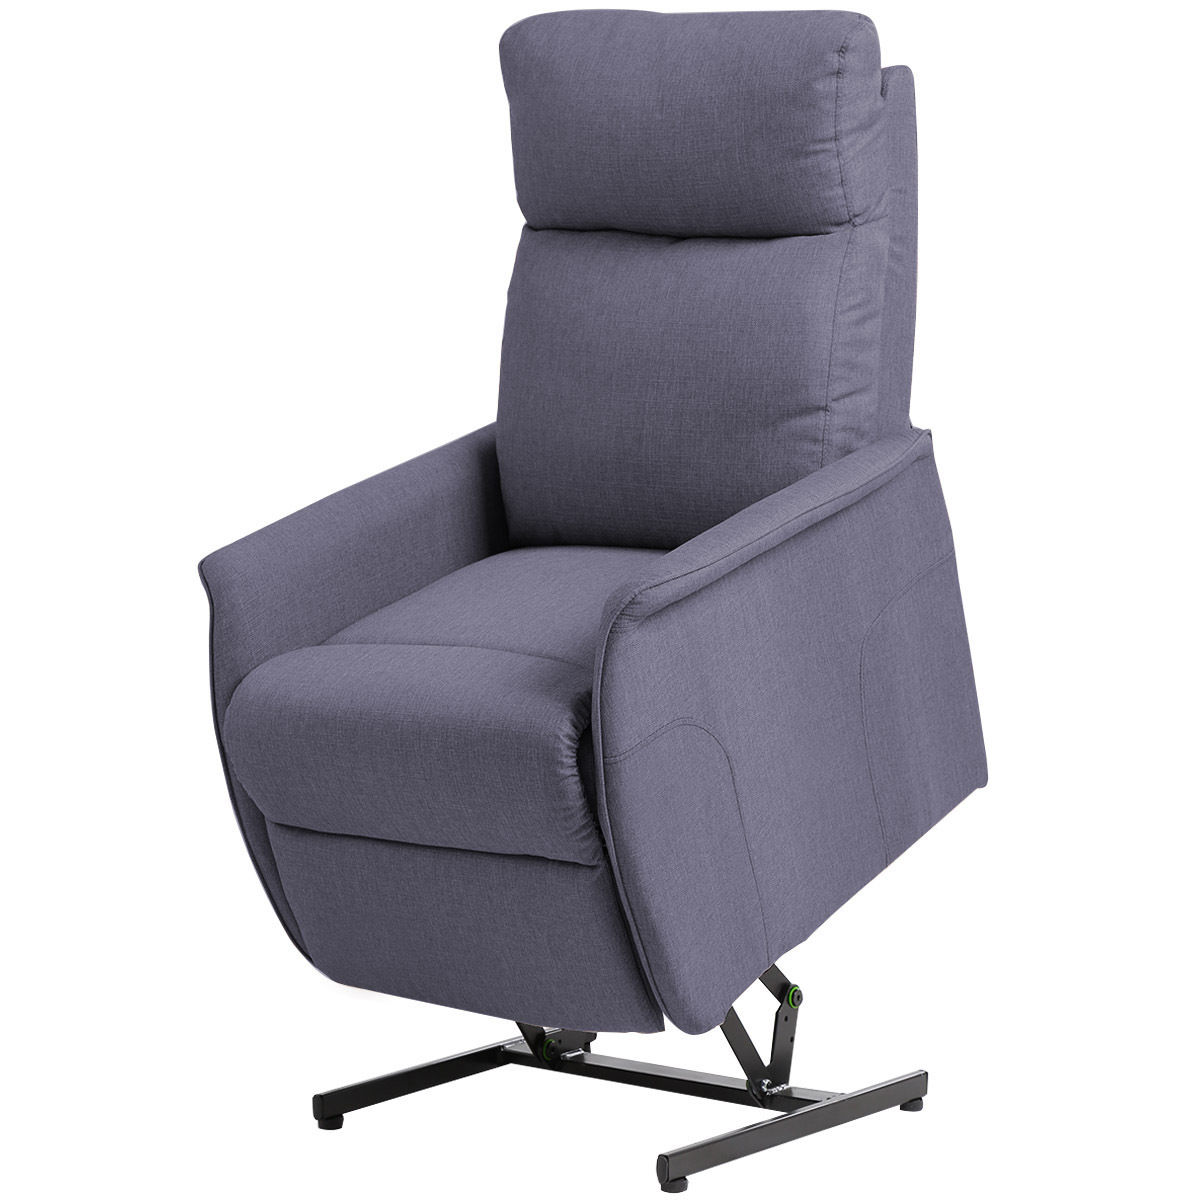 Costway Electric Power Lift Chair Recliner Sofa Fabric Padded Seat Living Room w/Remote